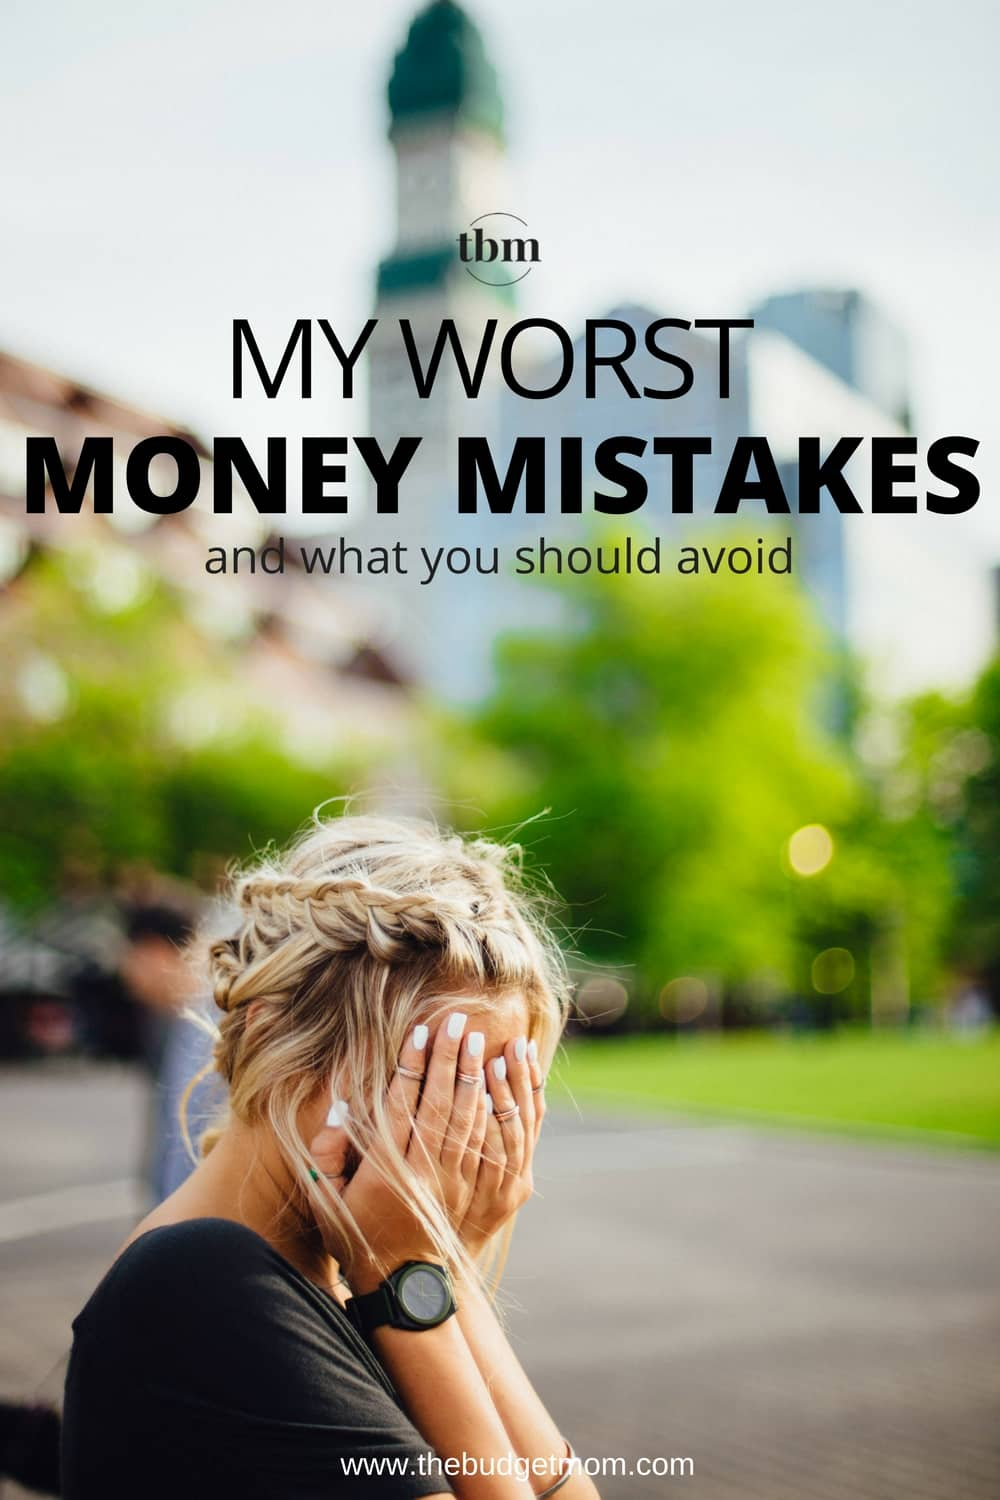 These are some of the worst money mistakes I have ever made. They had huge consequences but taught me valuable lessons. Click to read about these money drainers you need to avoid.